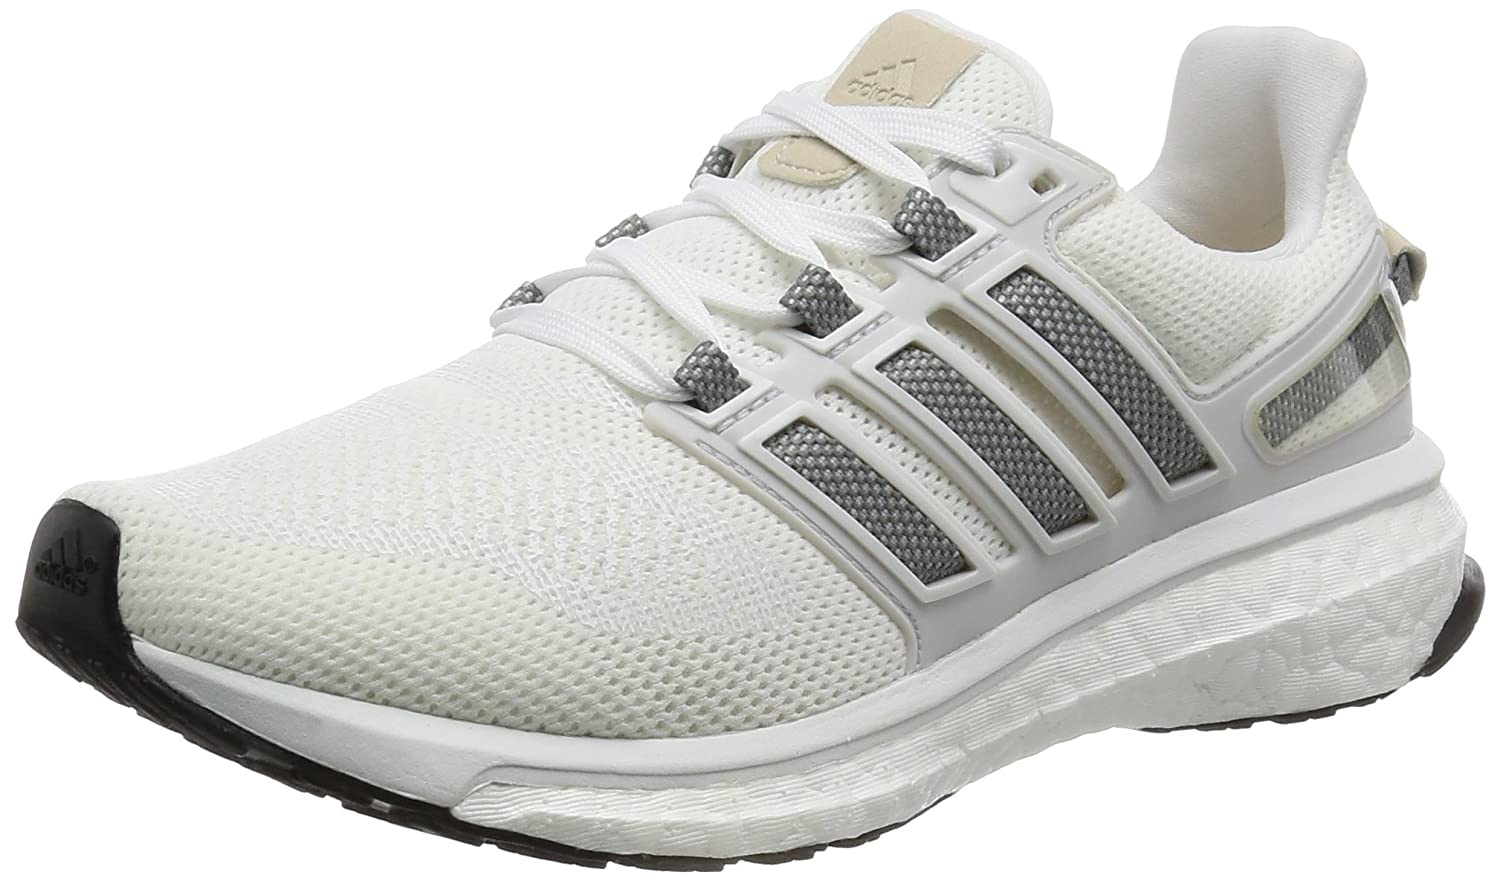 4a791858eb88 adidas Women s Energy Boost 3 W Training Running Shoes  Amazon.co.uk  Shoes    Bags